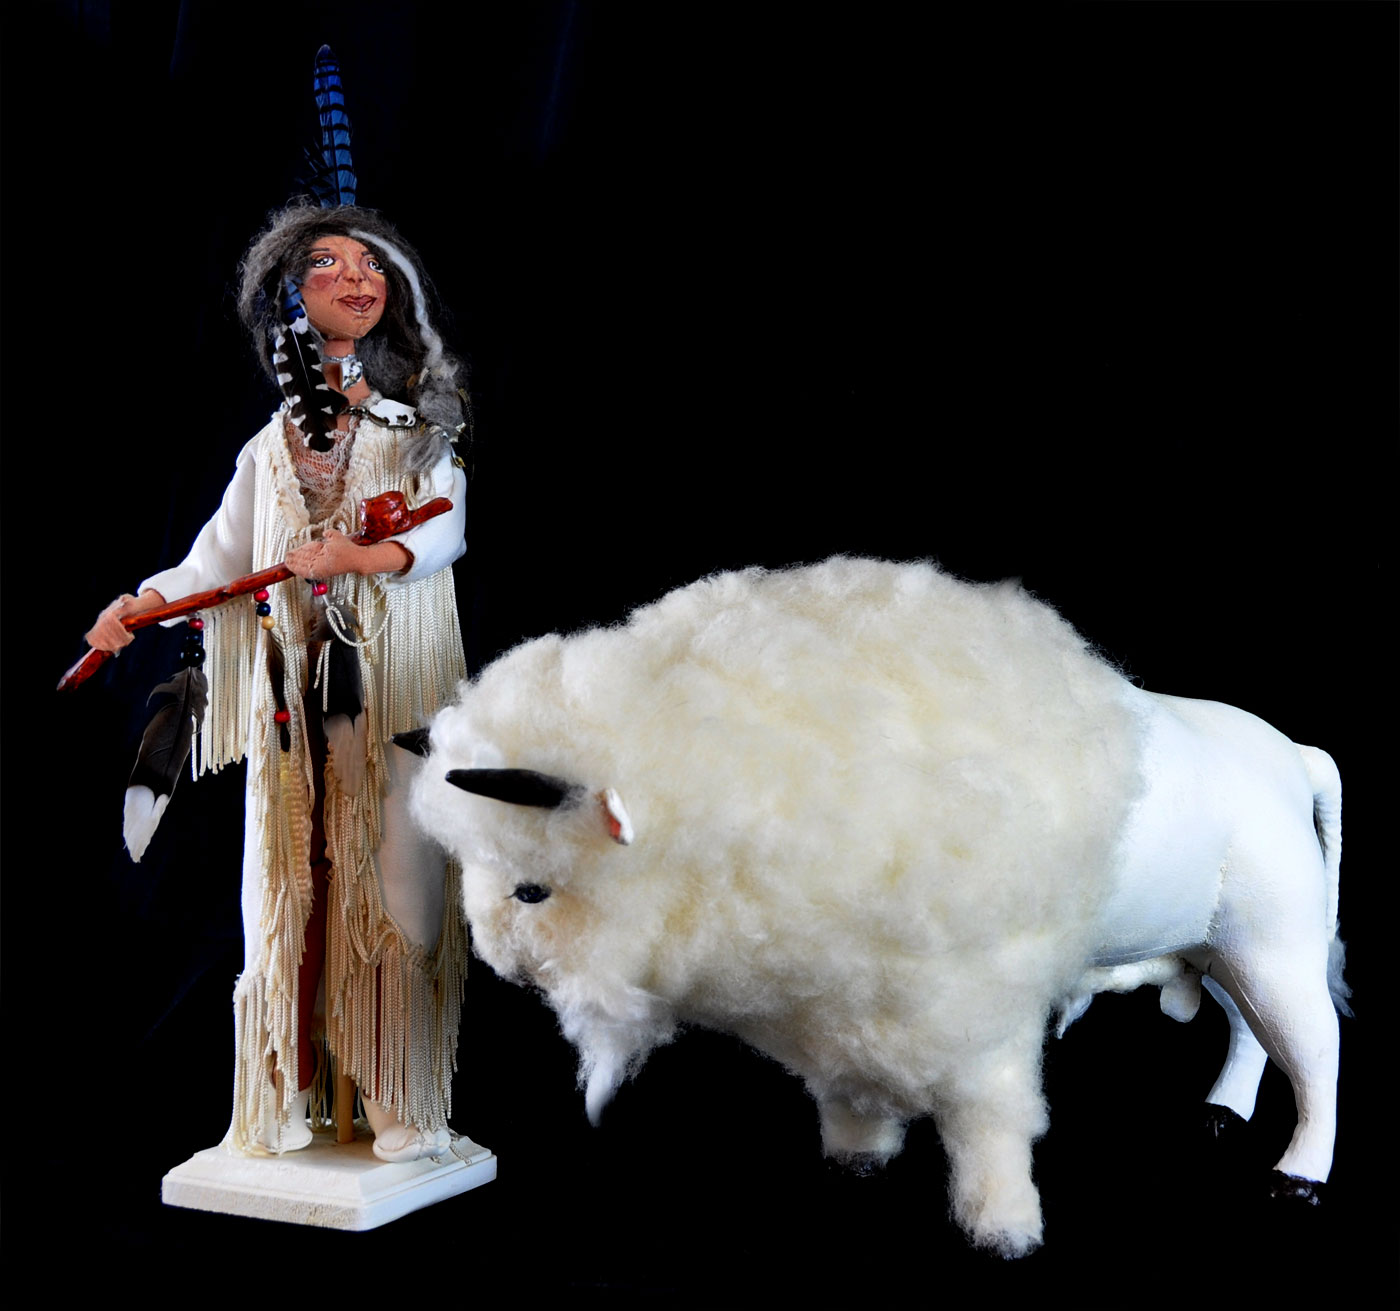 White Buffalo Calf Woman Doll - Handmade Dolls Online - Native American Doll